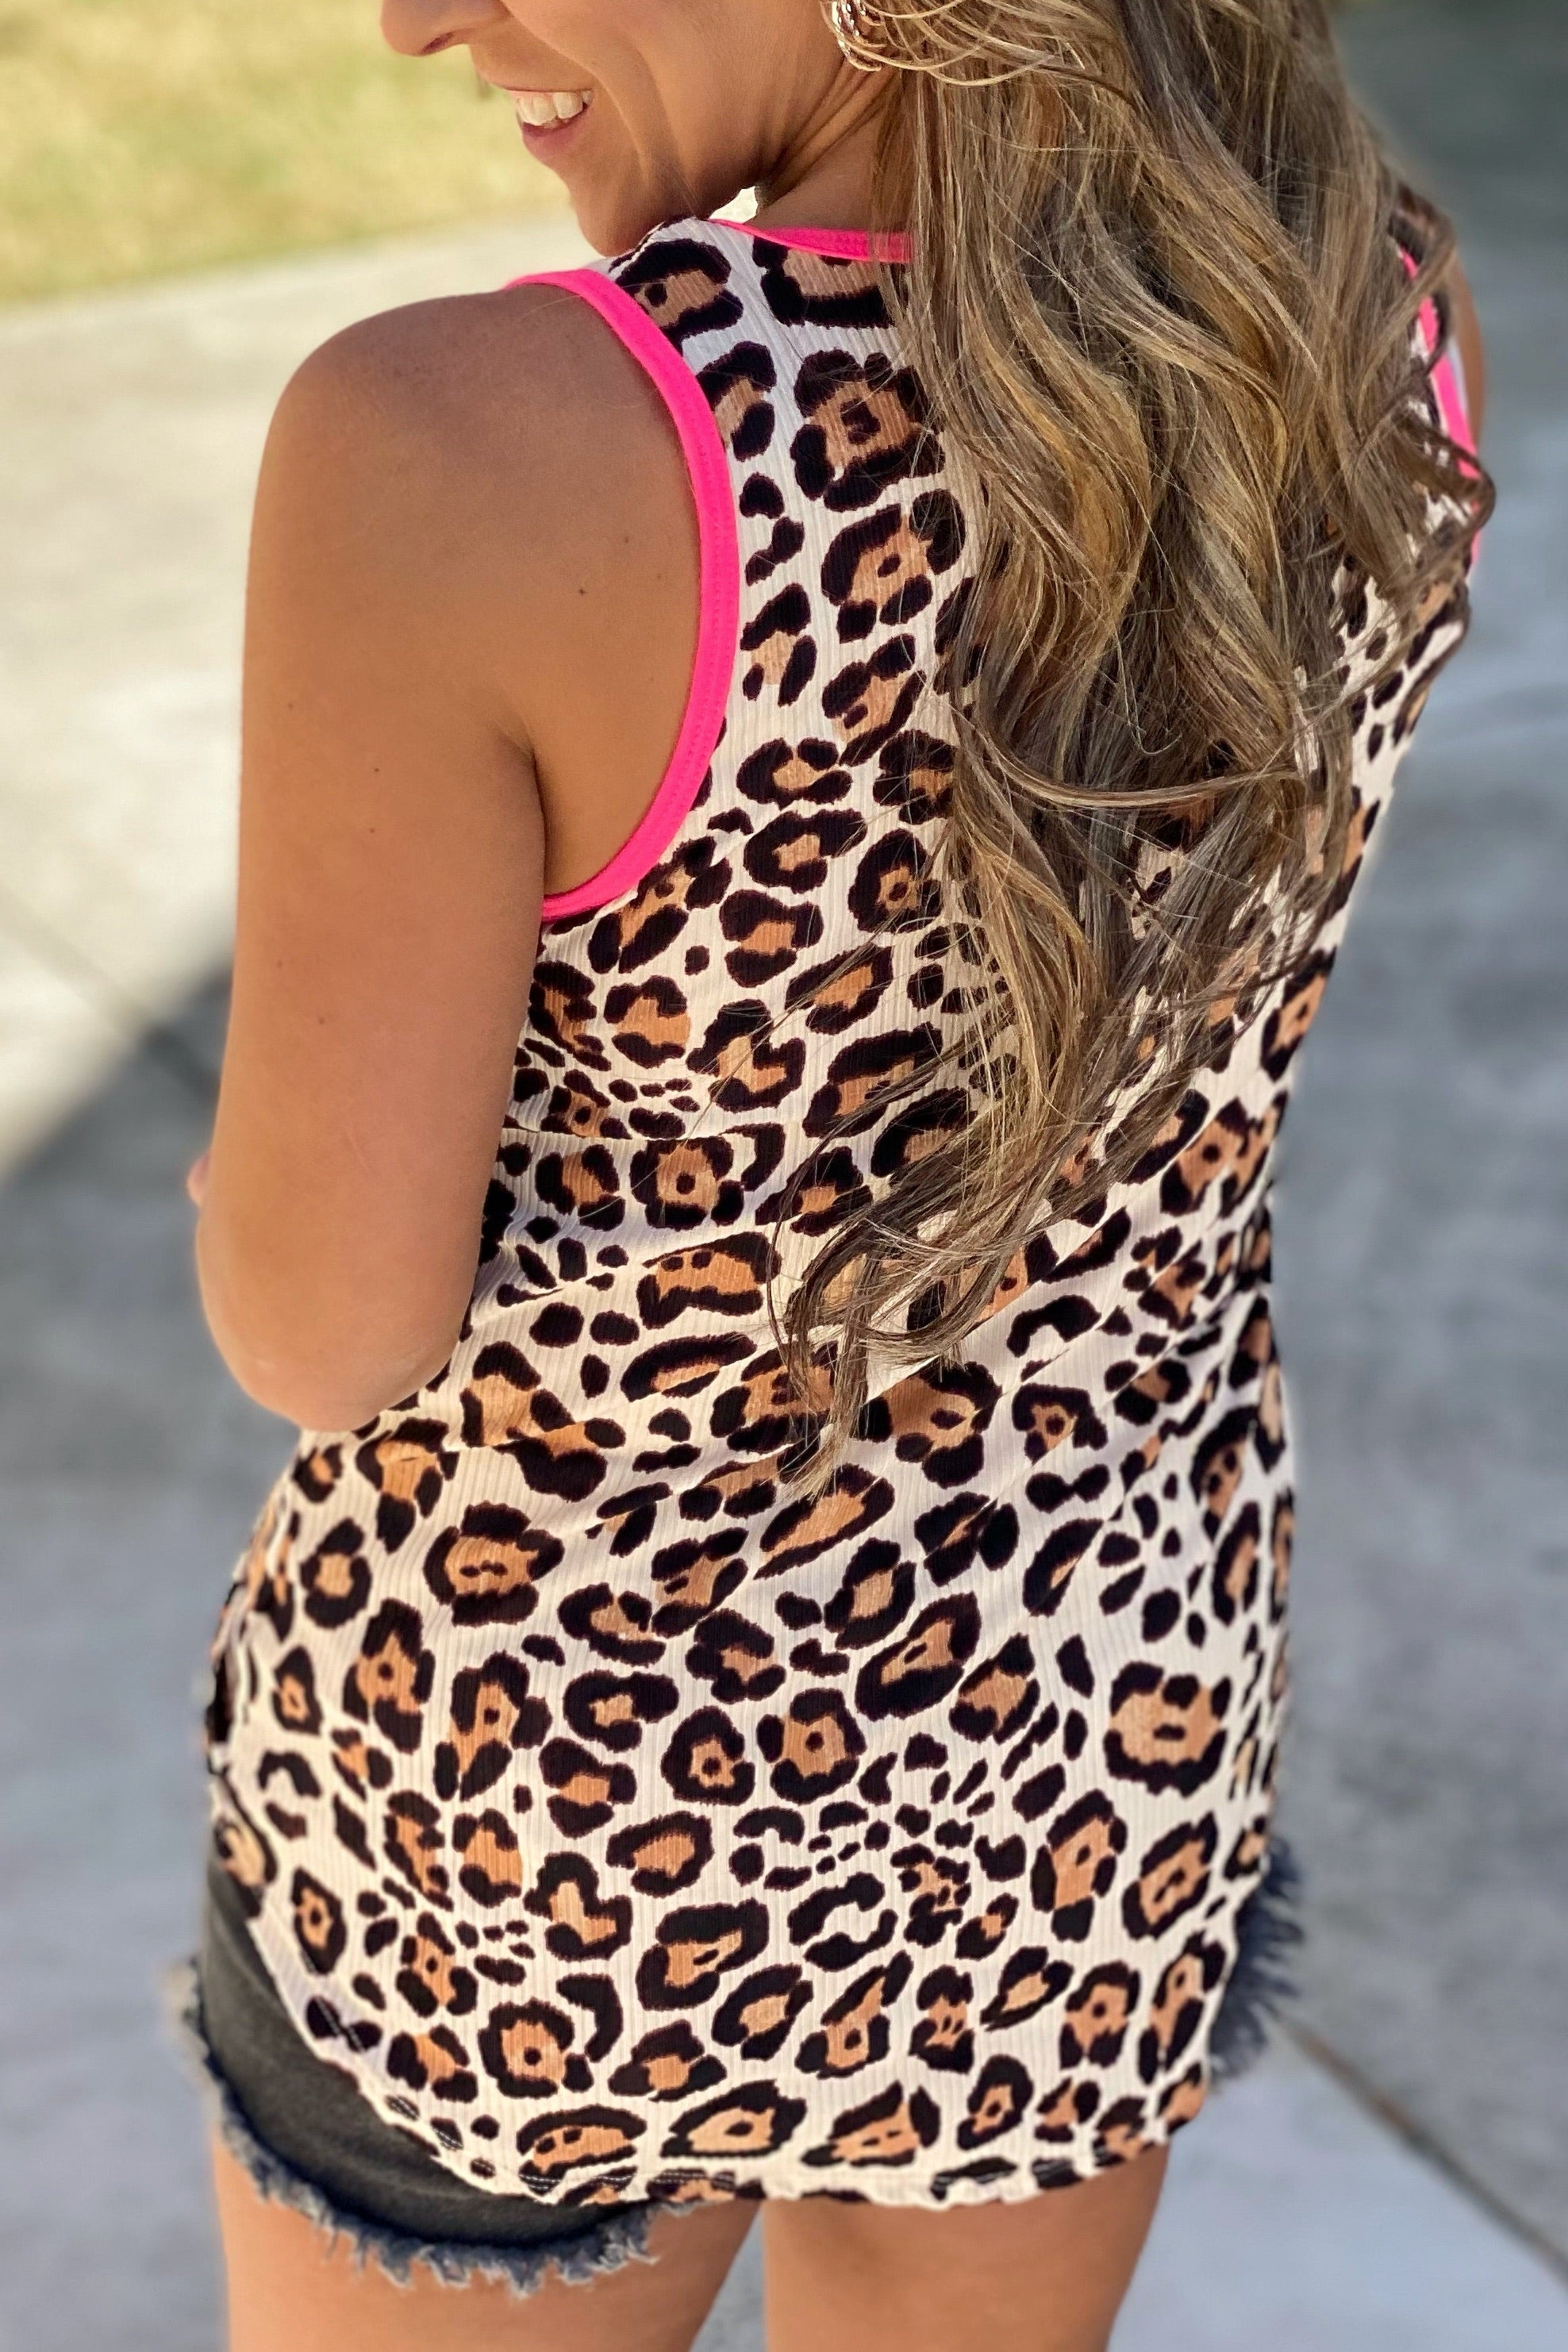 Big Star Sleeveless Animal Print Ribbed top with Pink Trim